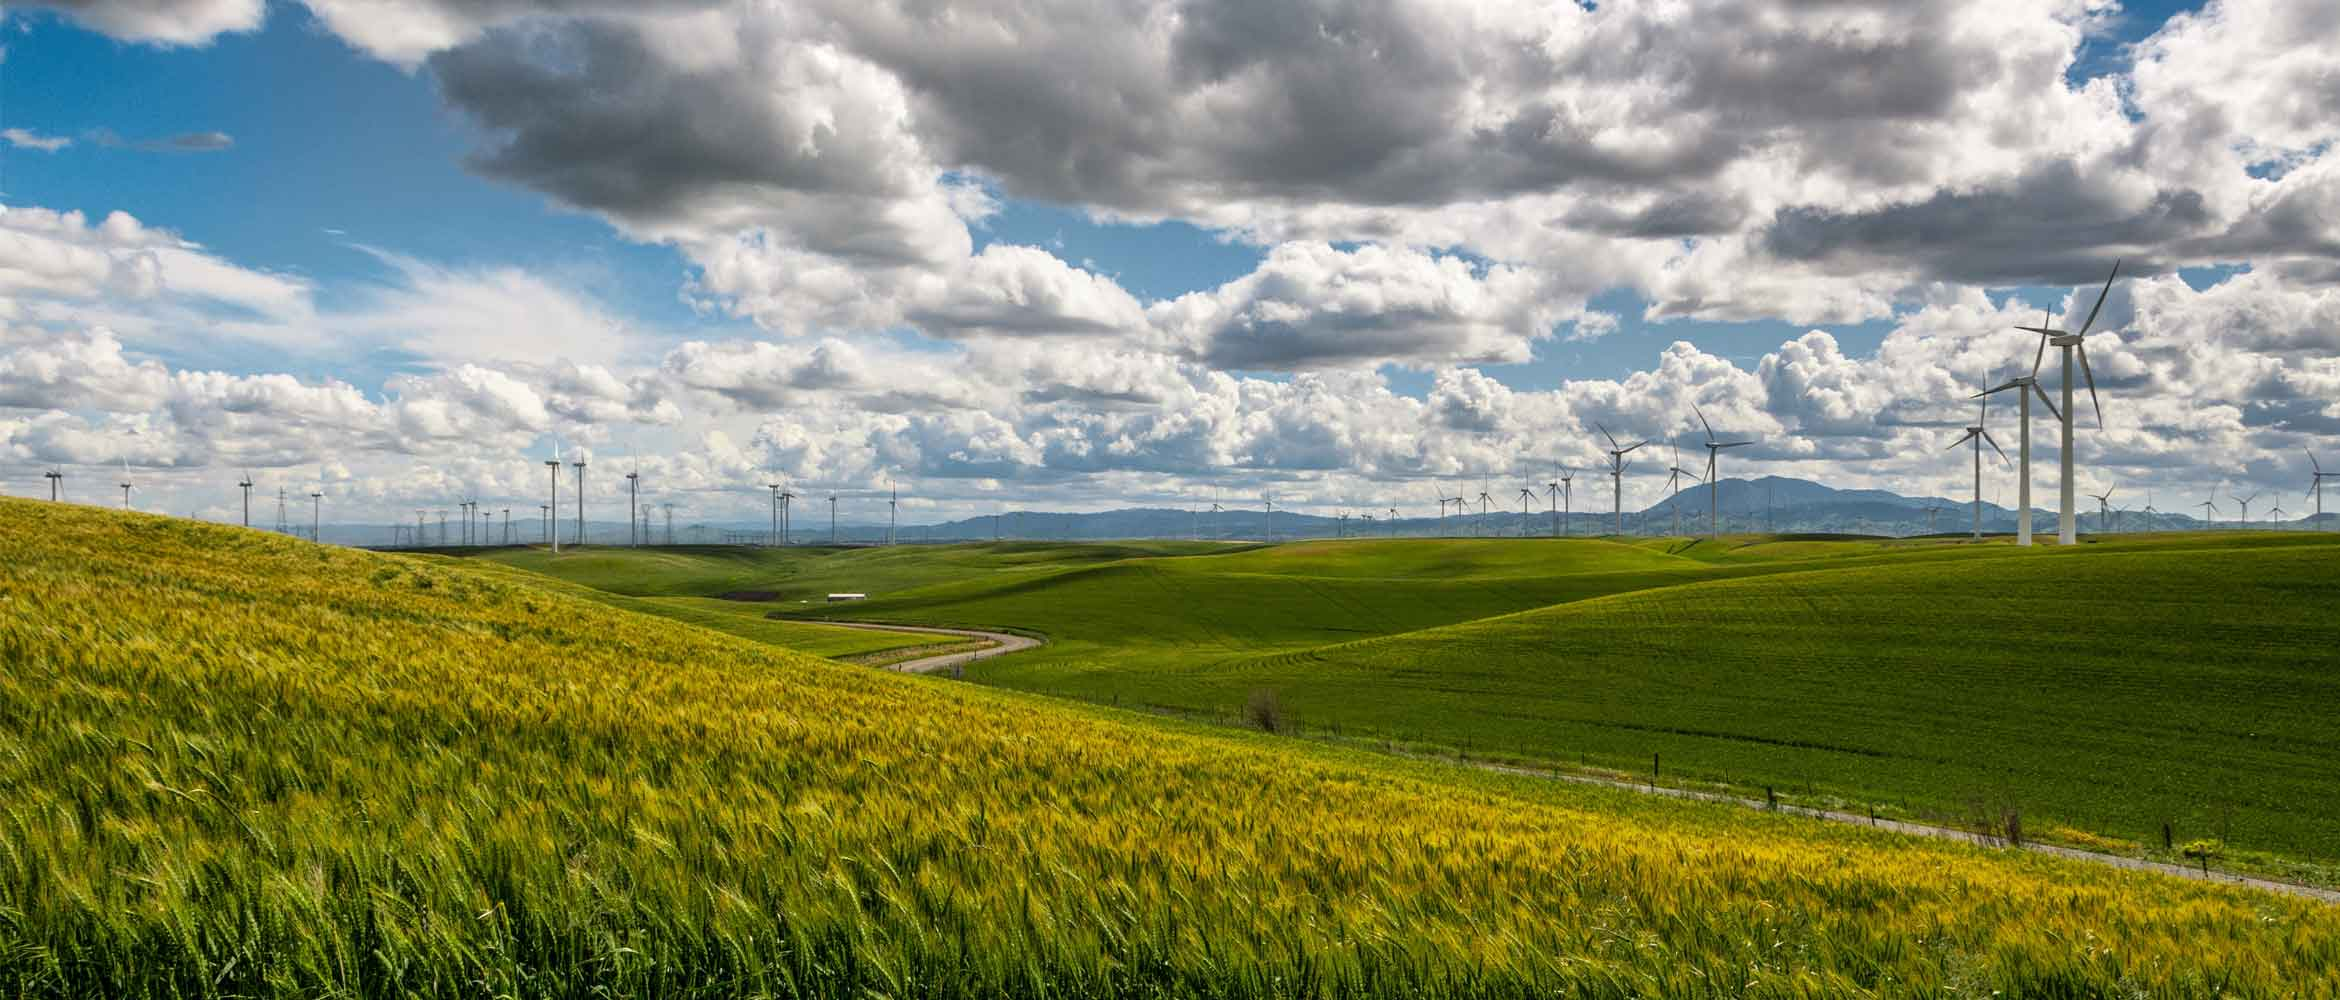 Green fields with wind turbines in the background